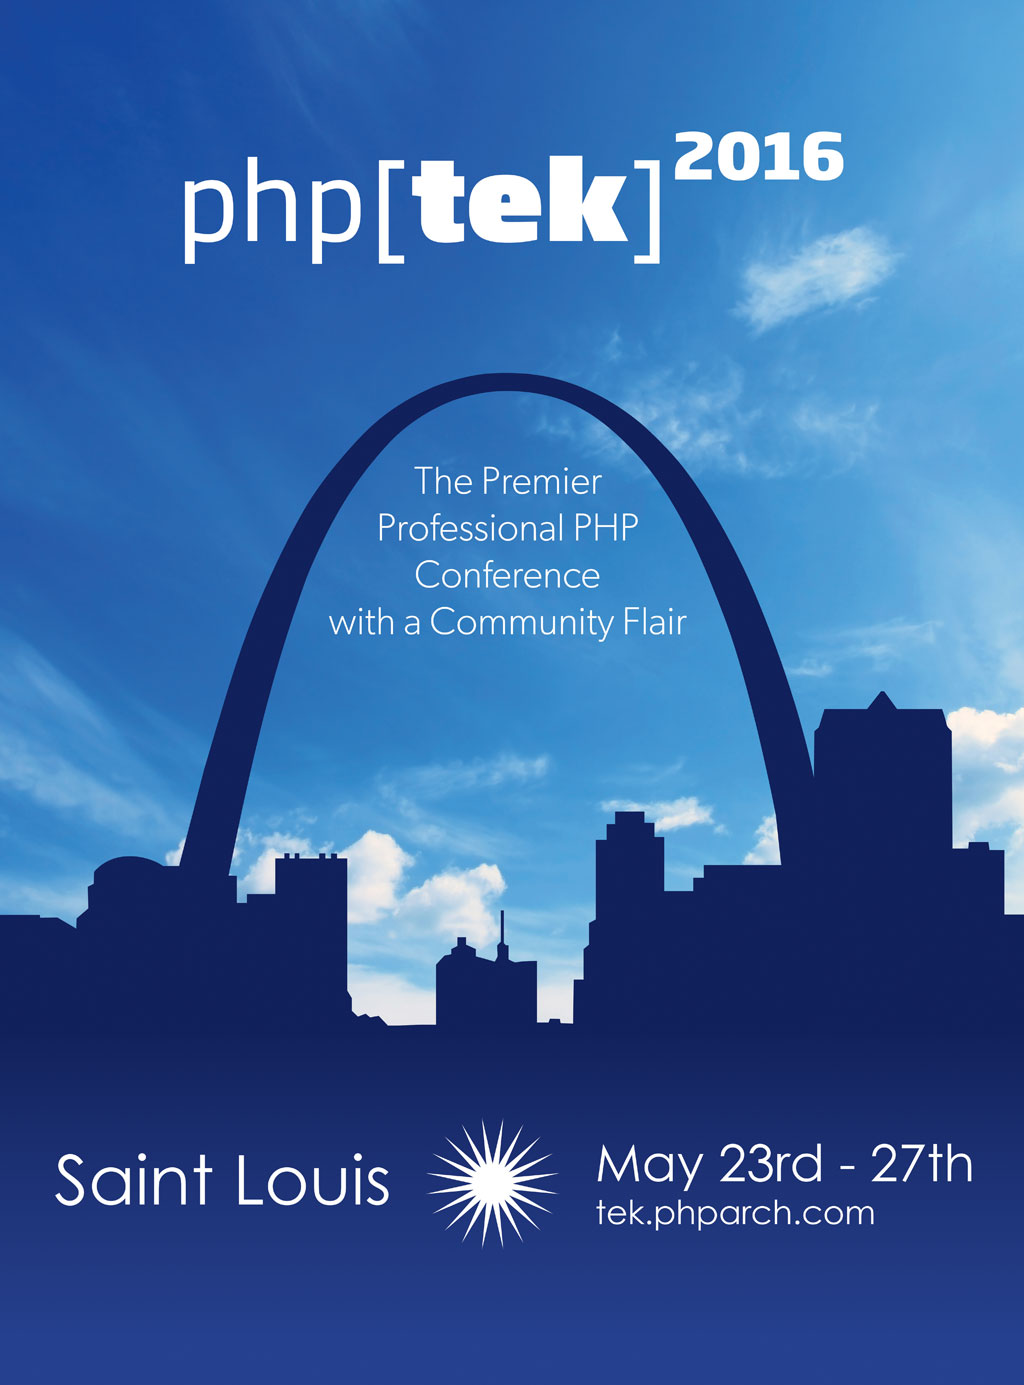 php[tek] 2016 - St. Louis - May 23rd - 27th